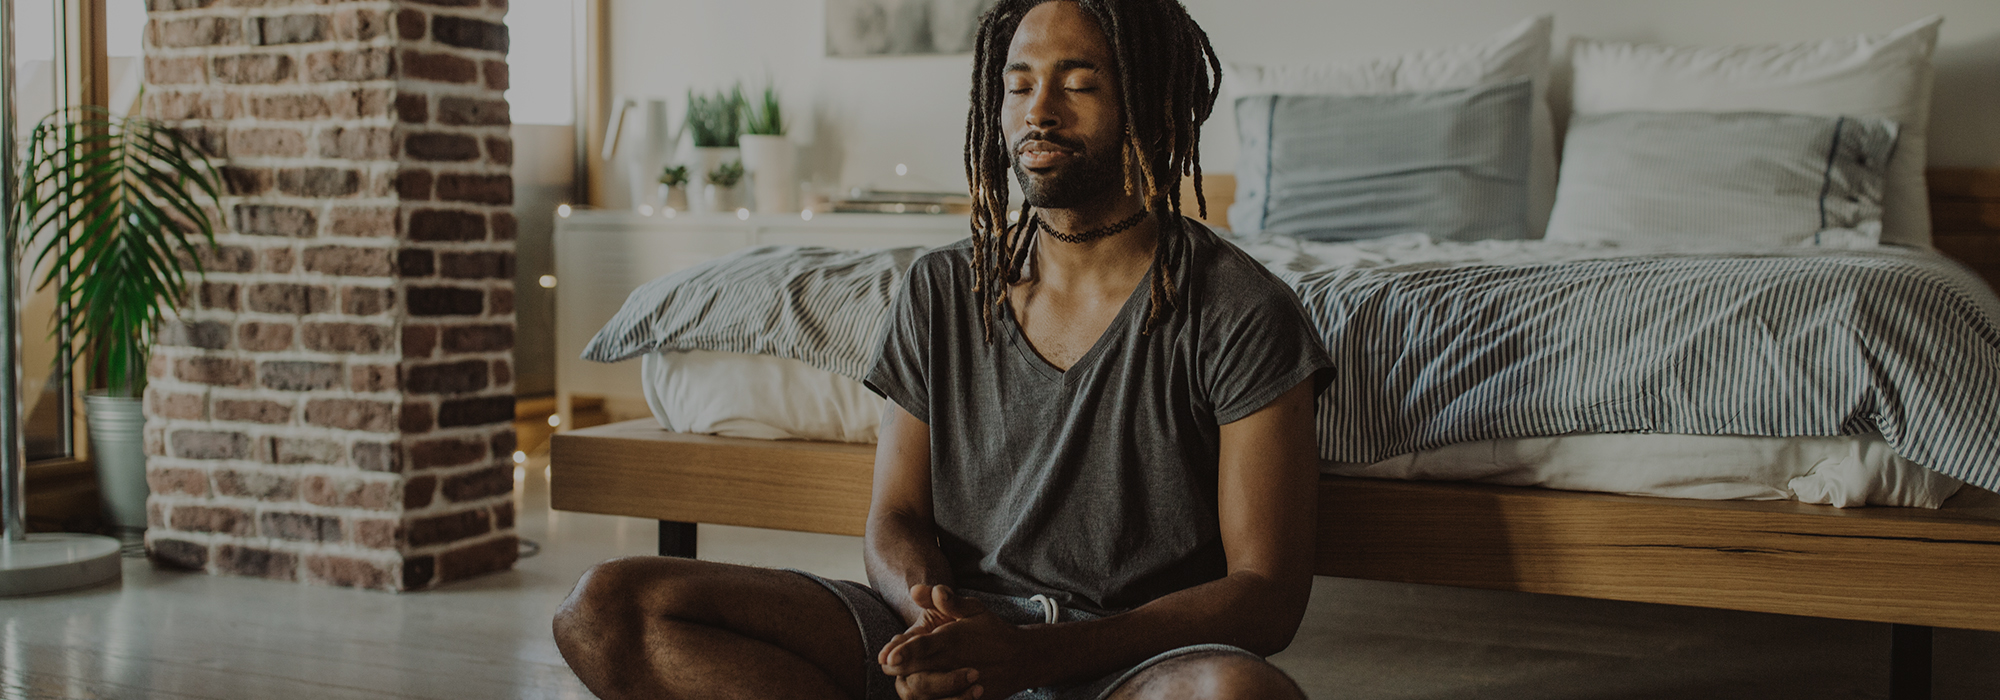 The Deeper Meaning Behind Self-Care